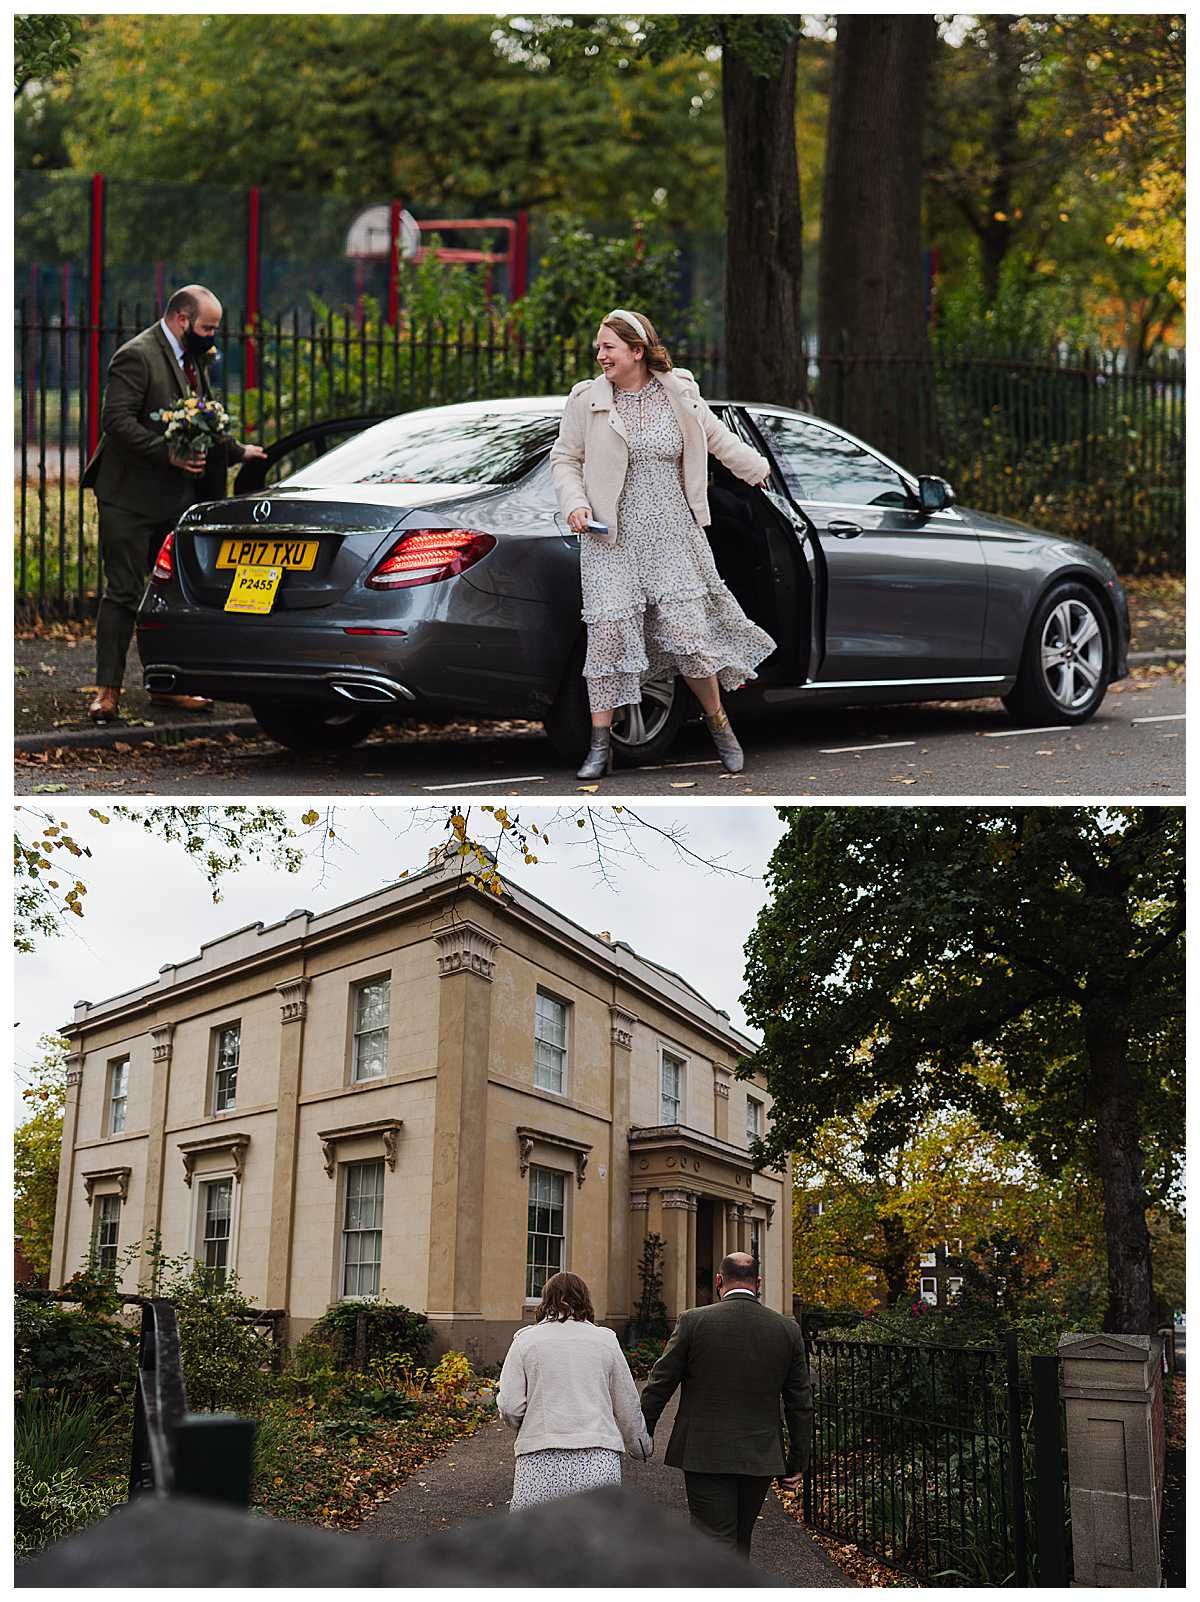 very happy bride arriving by taxi at elizabeth gaskell's house - charlotte giddings photography and walking up the drive to the house